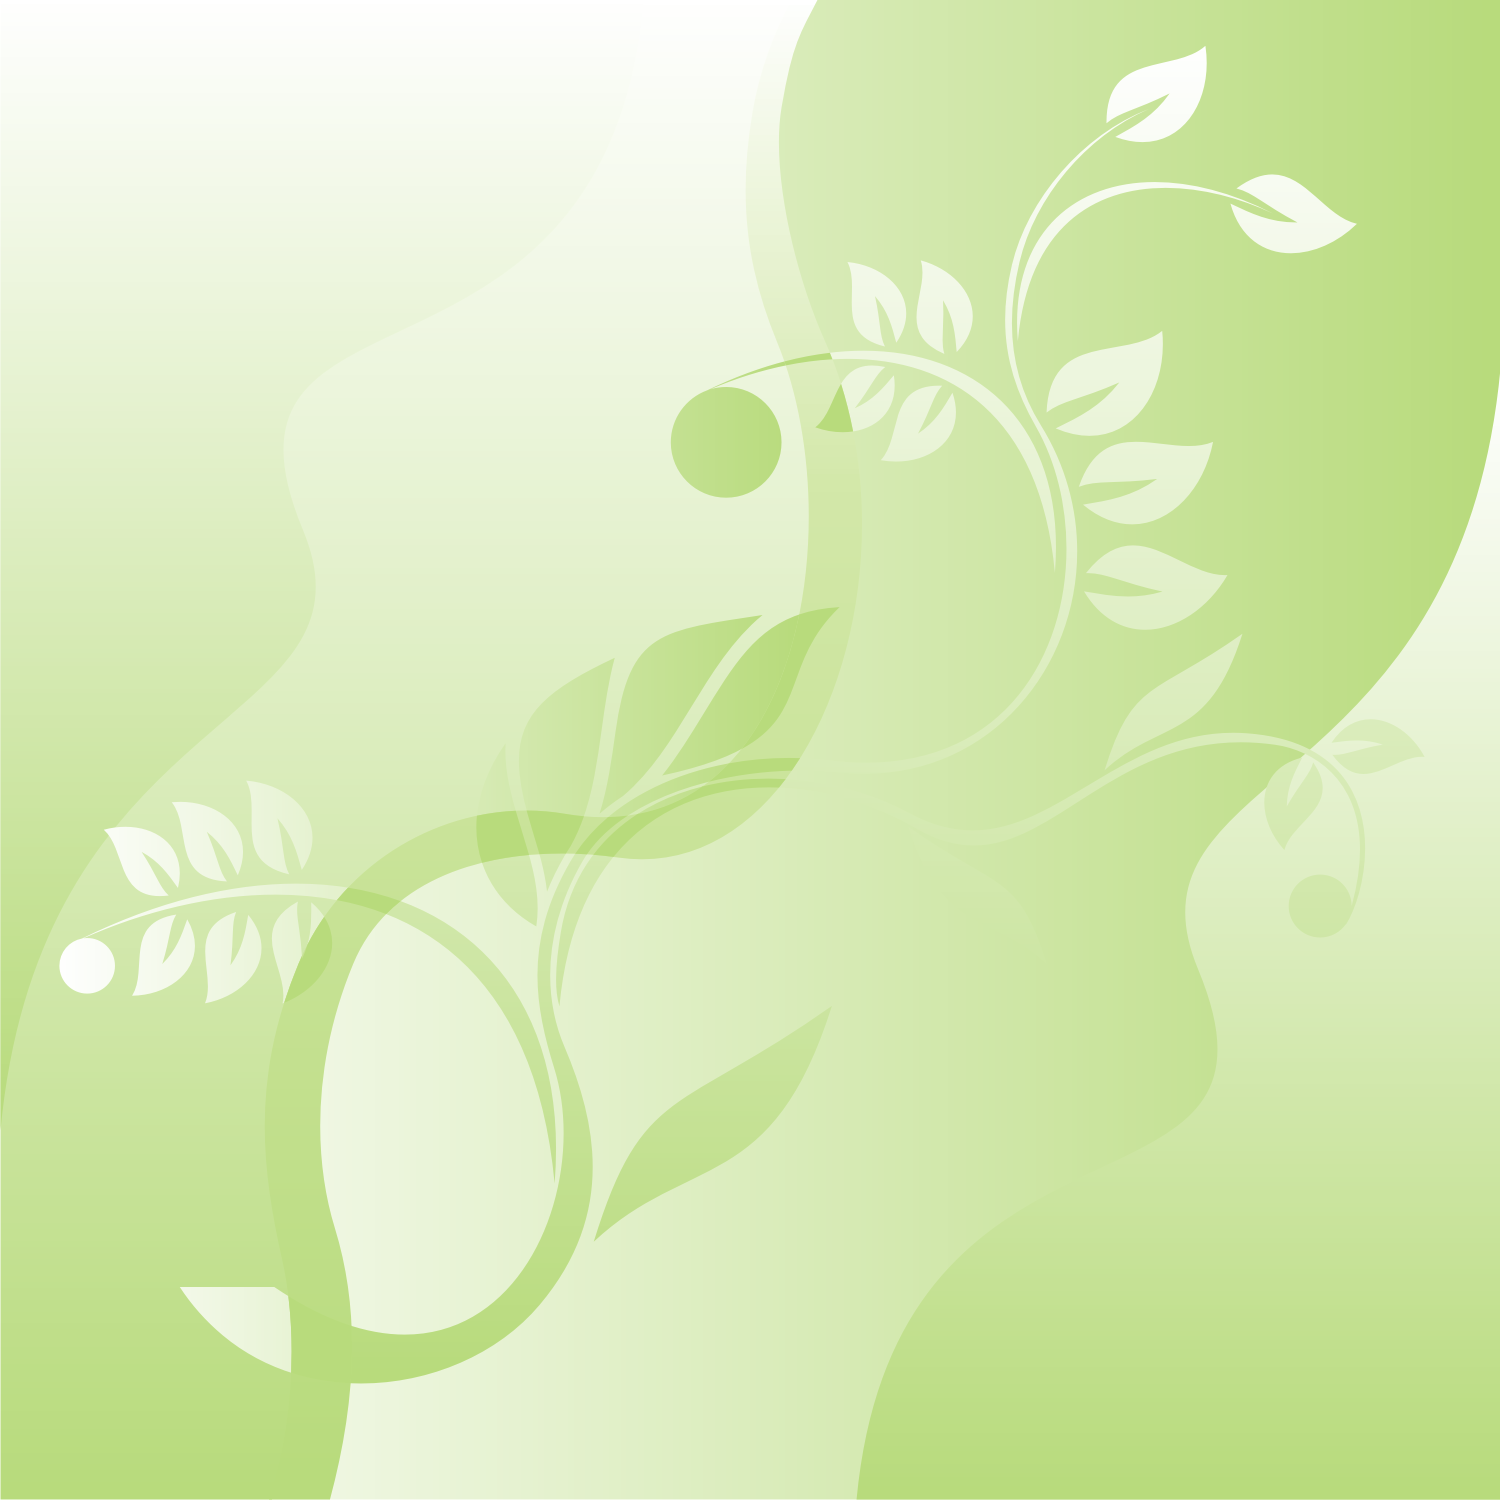 Green Floral Background Png 1 Png Image